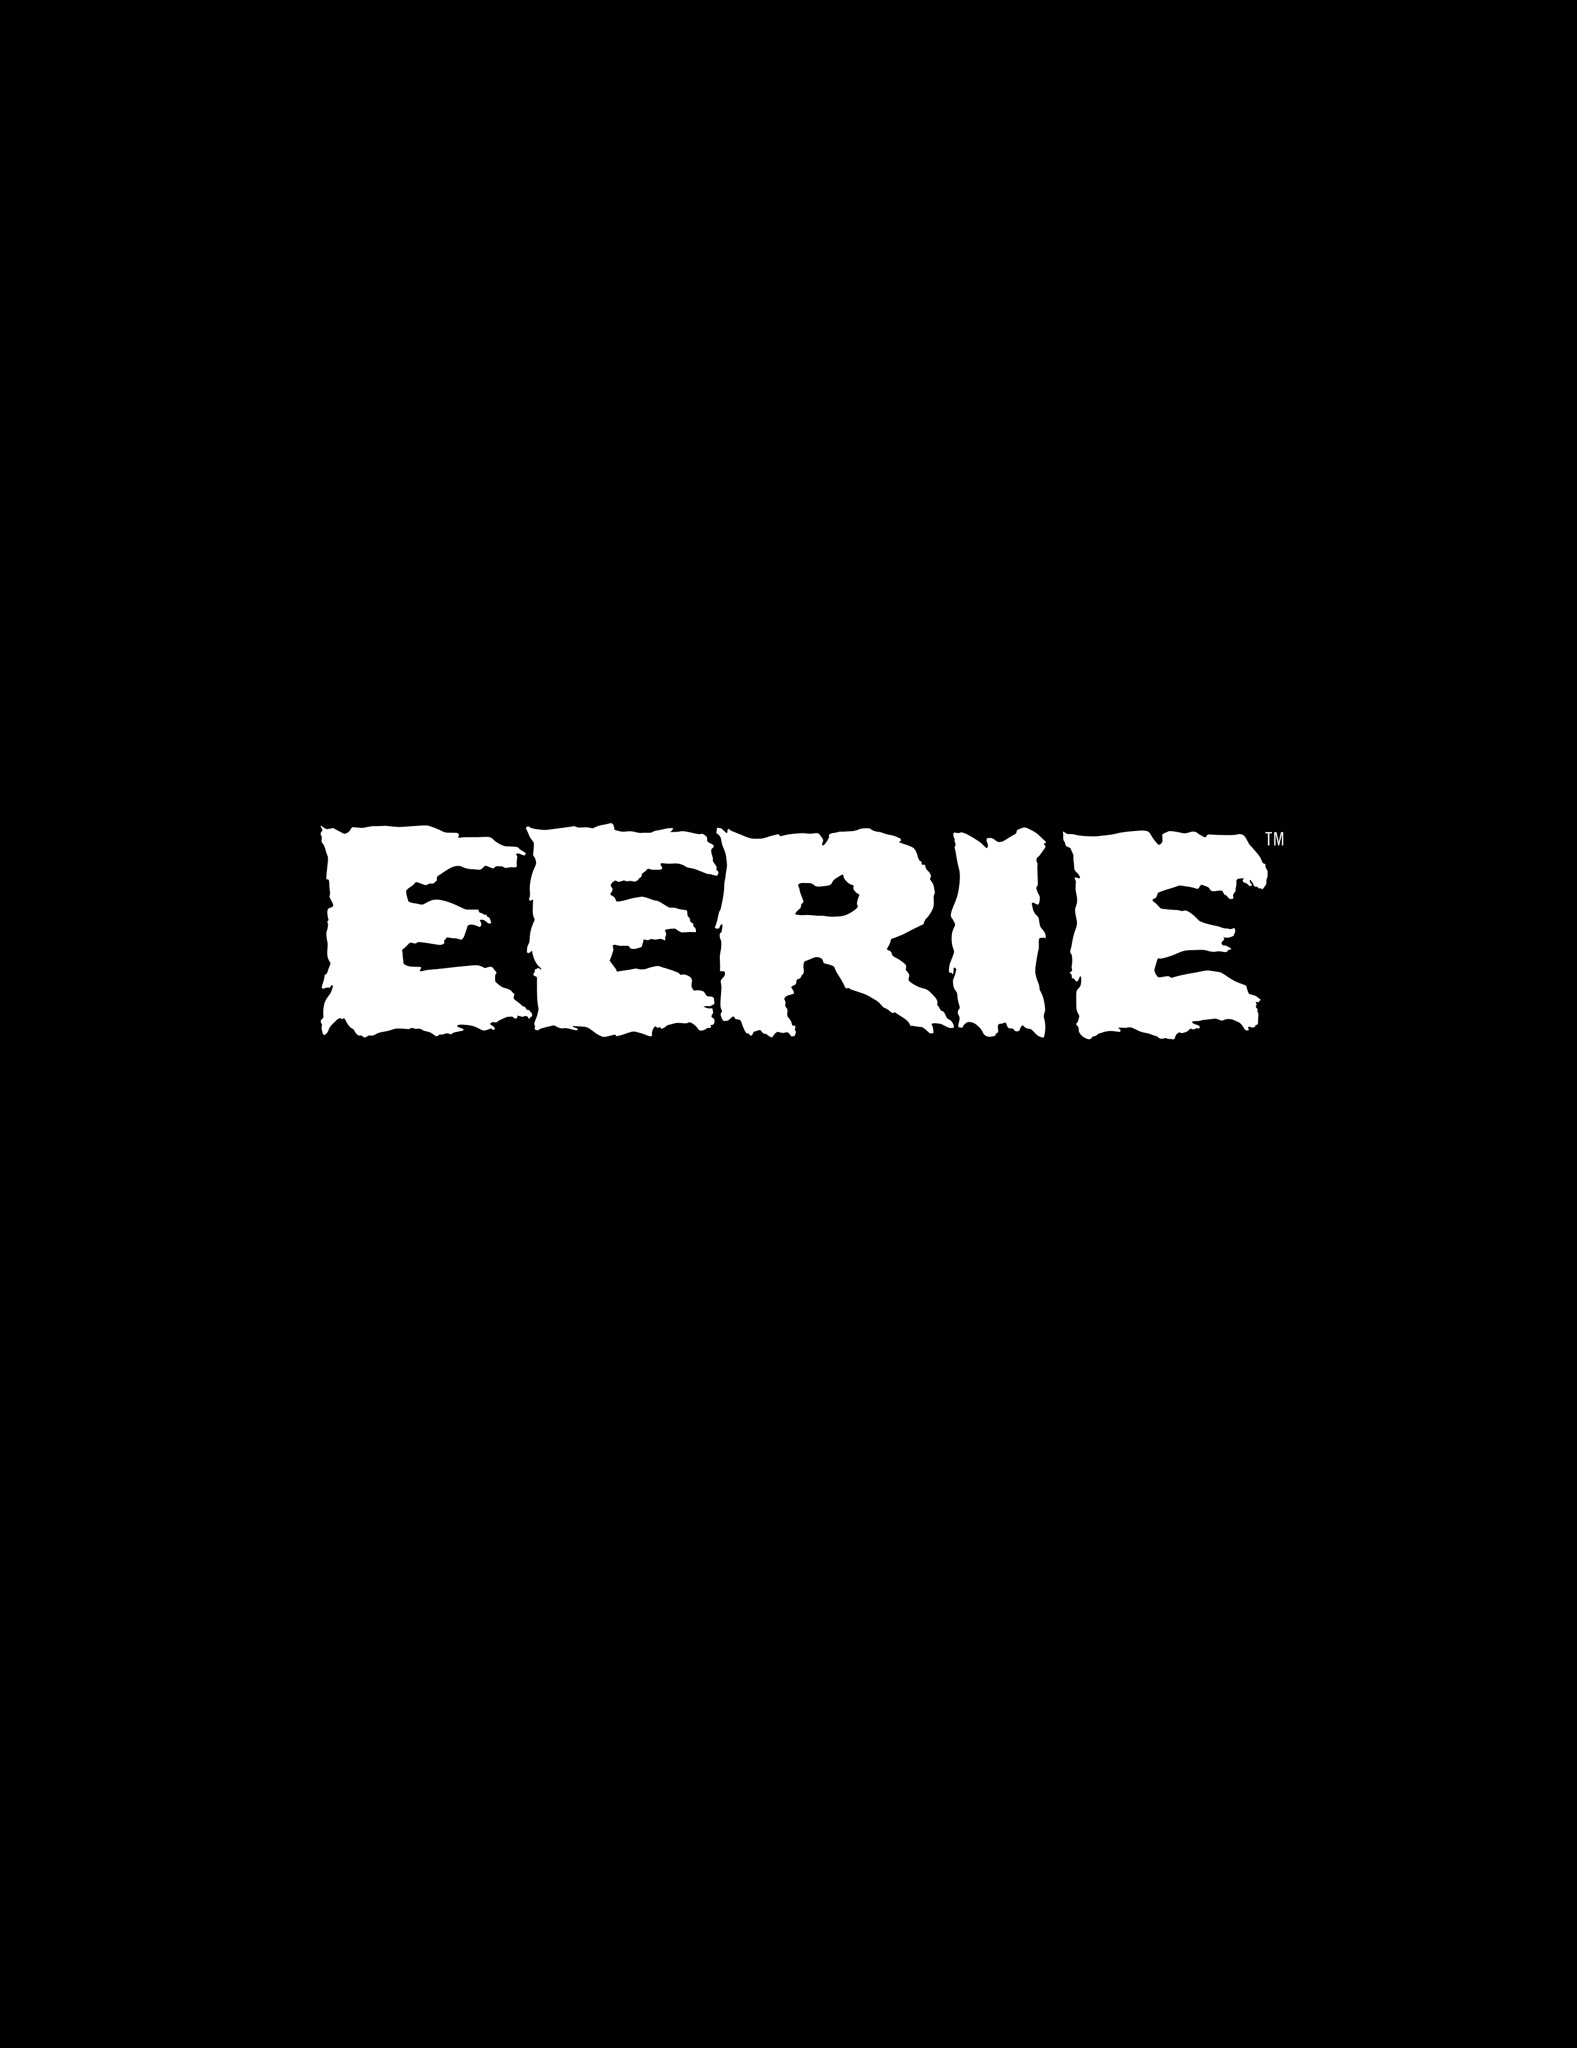 Read online Eerie Archives comic -  Issue # TPB 13 - 2